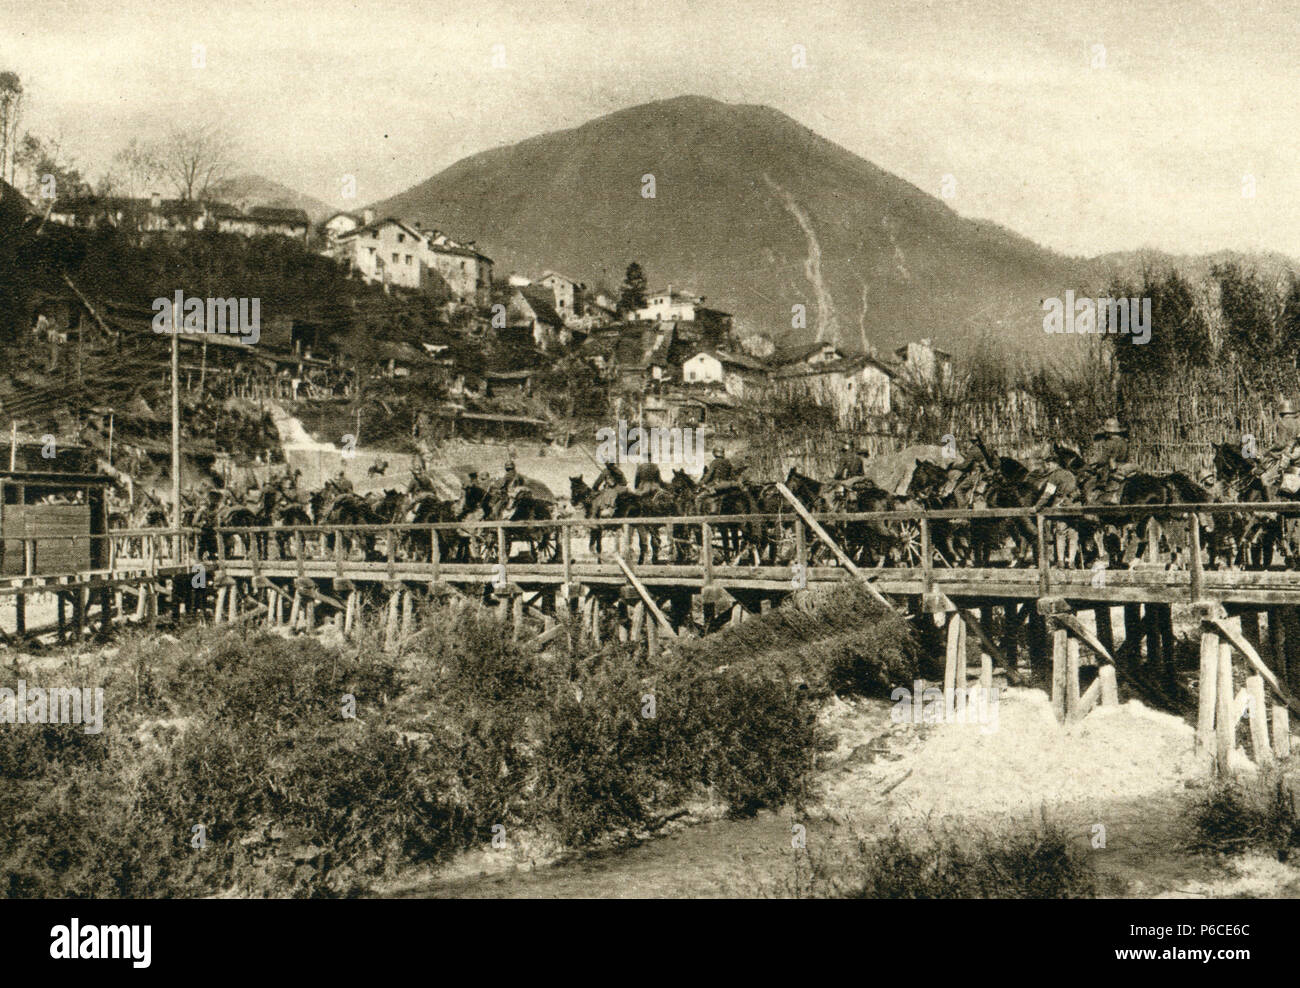 cavalry, German soldiers, Battle of the Isonzo, ww1, wwi, world war one - Stock Image